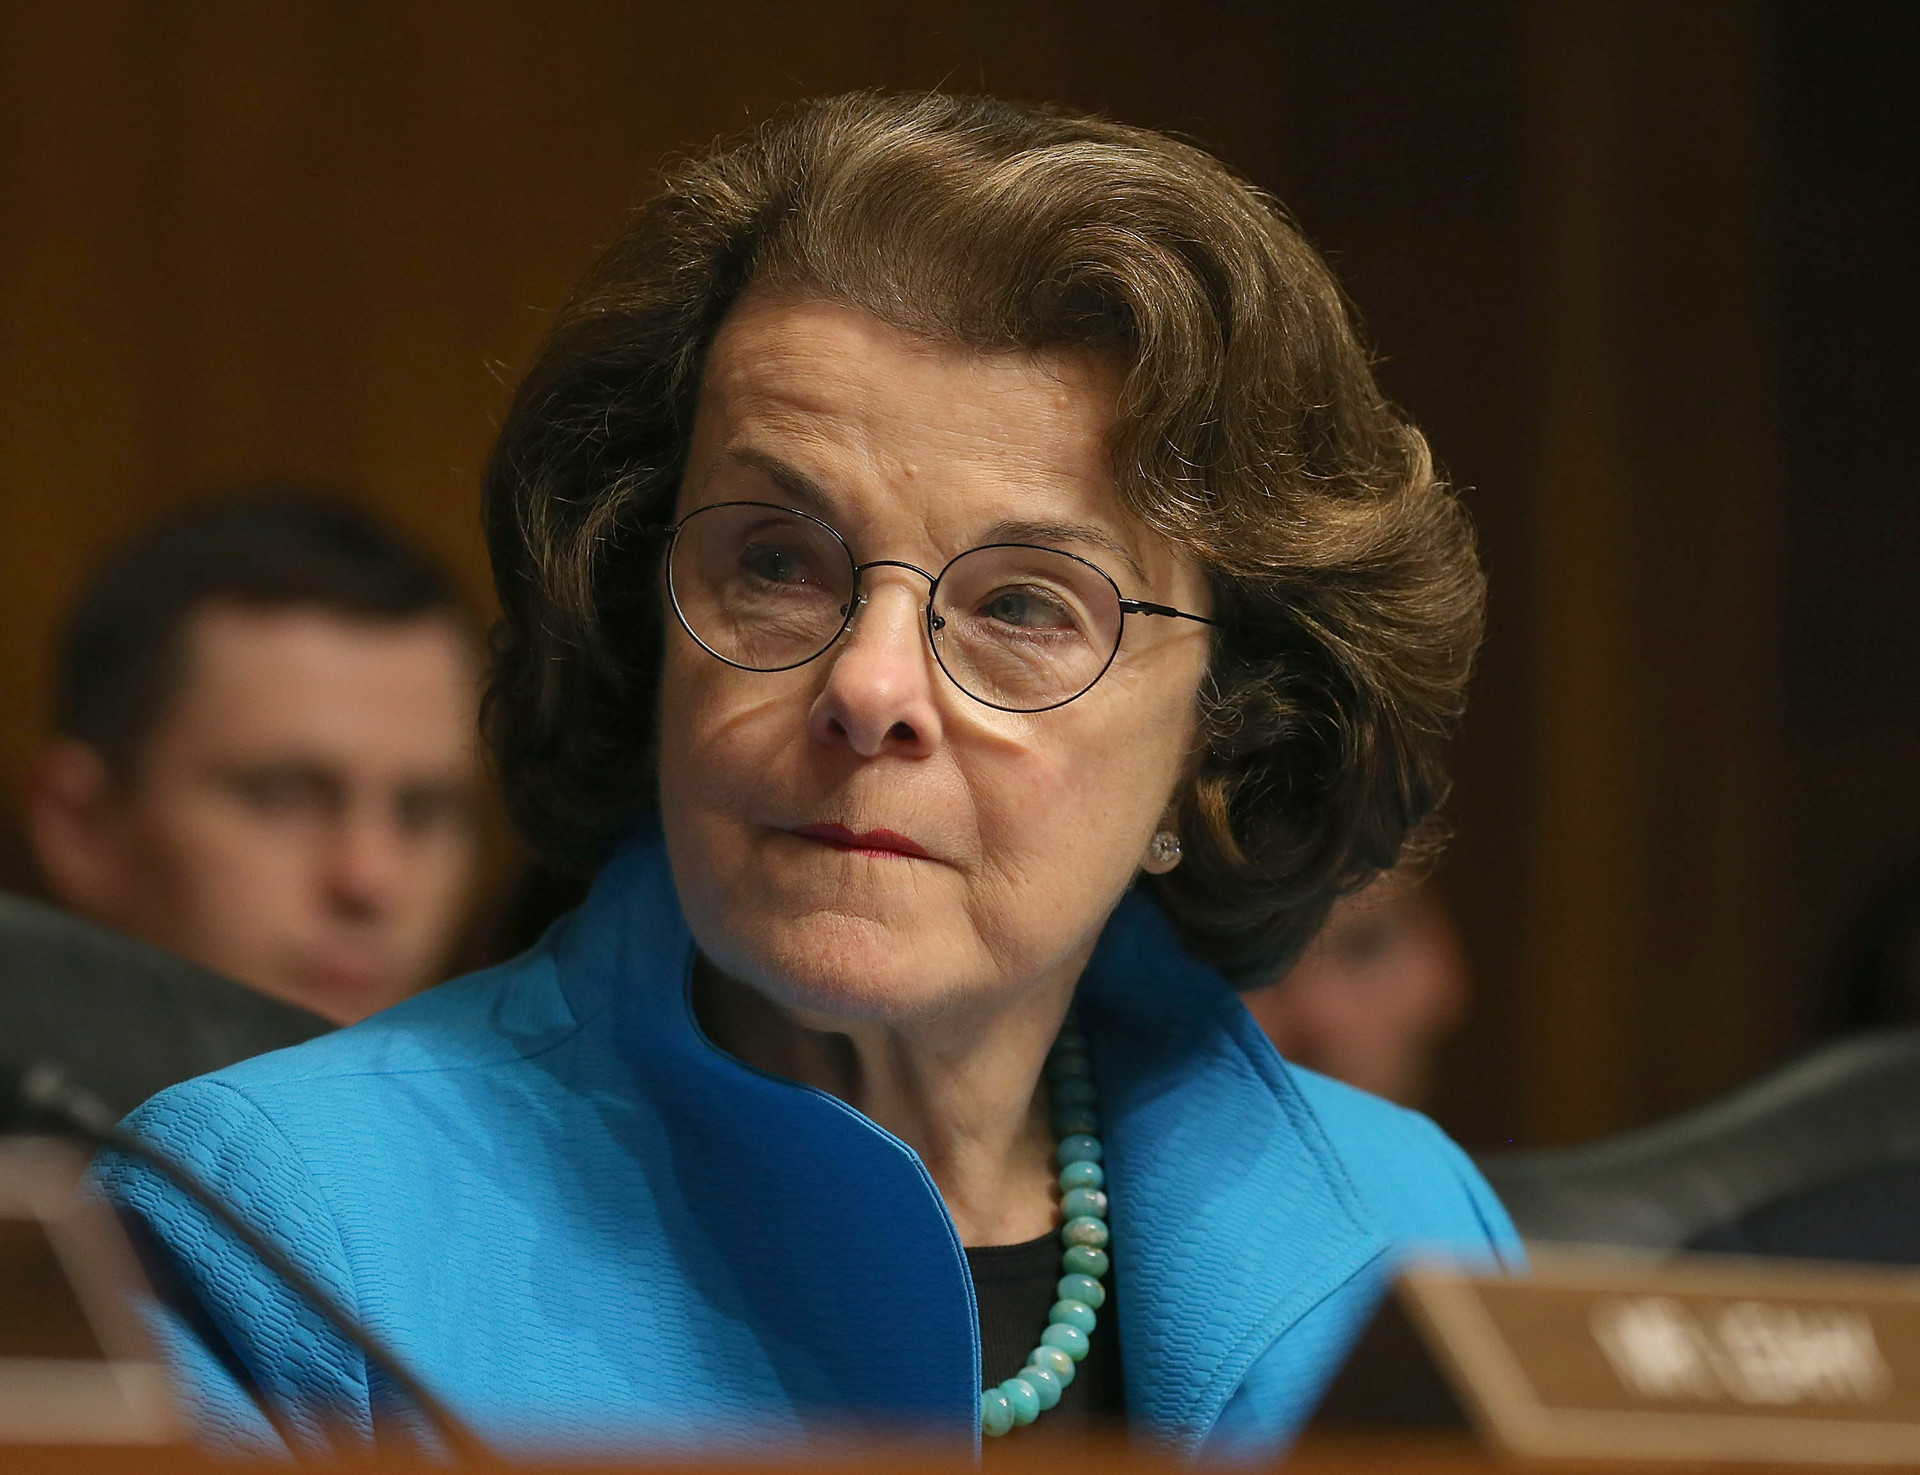 WASHINGTON, DC - JULY 08: Sen. Dianne Feinstein (D-CA) participates in a Senate Judiciary Committee hearing on Capitol Hill, July 8, 2015 in Washington, DC. The committee was hearing testimony on encryption technology, and the balance between public safety and privacy.